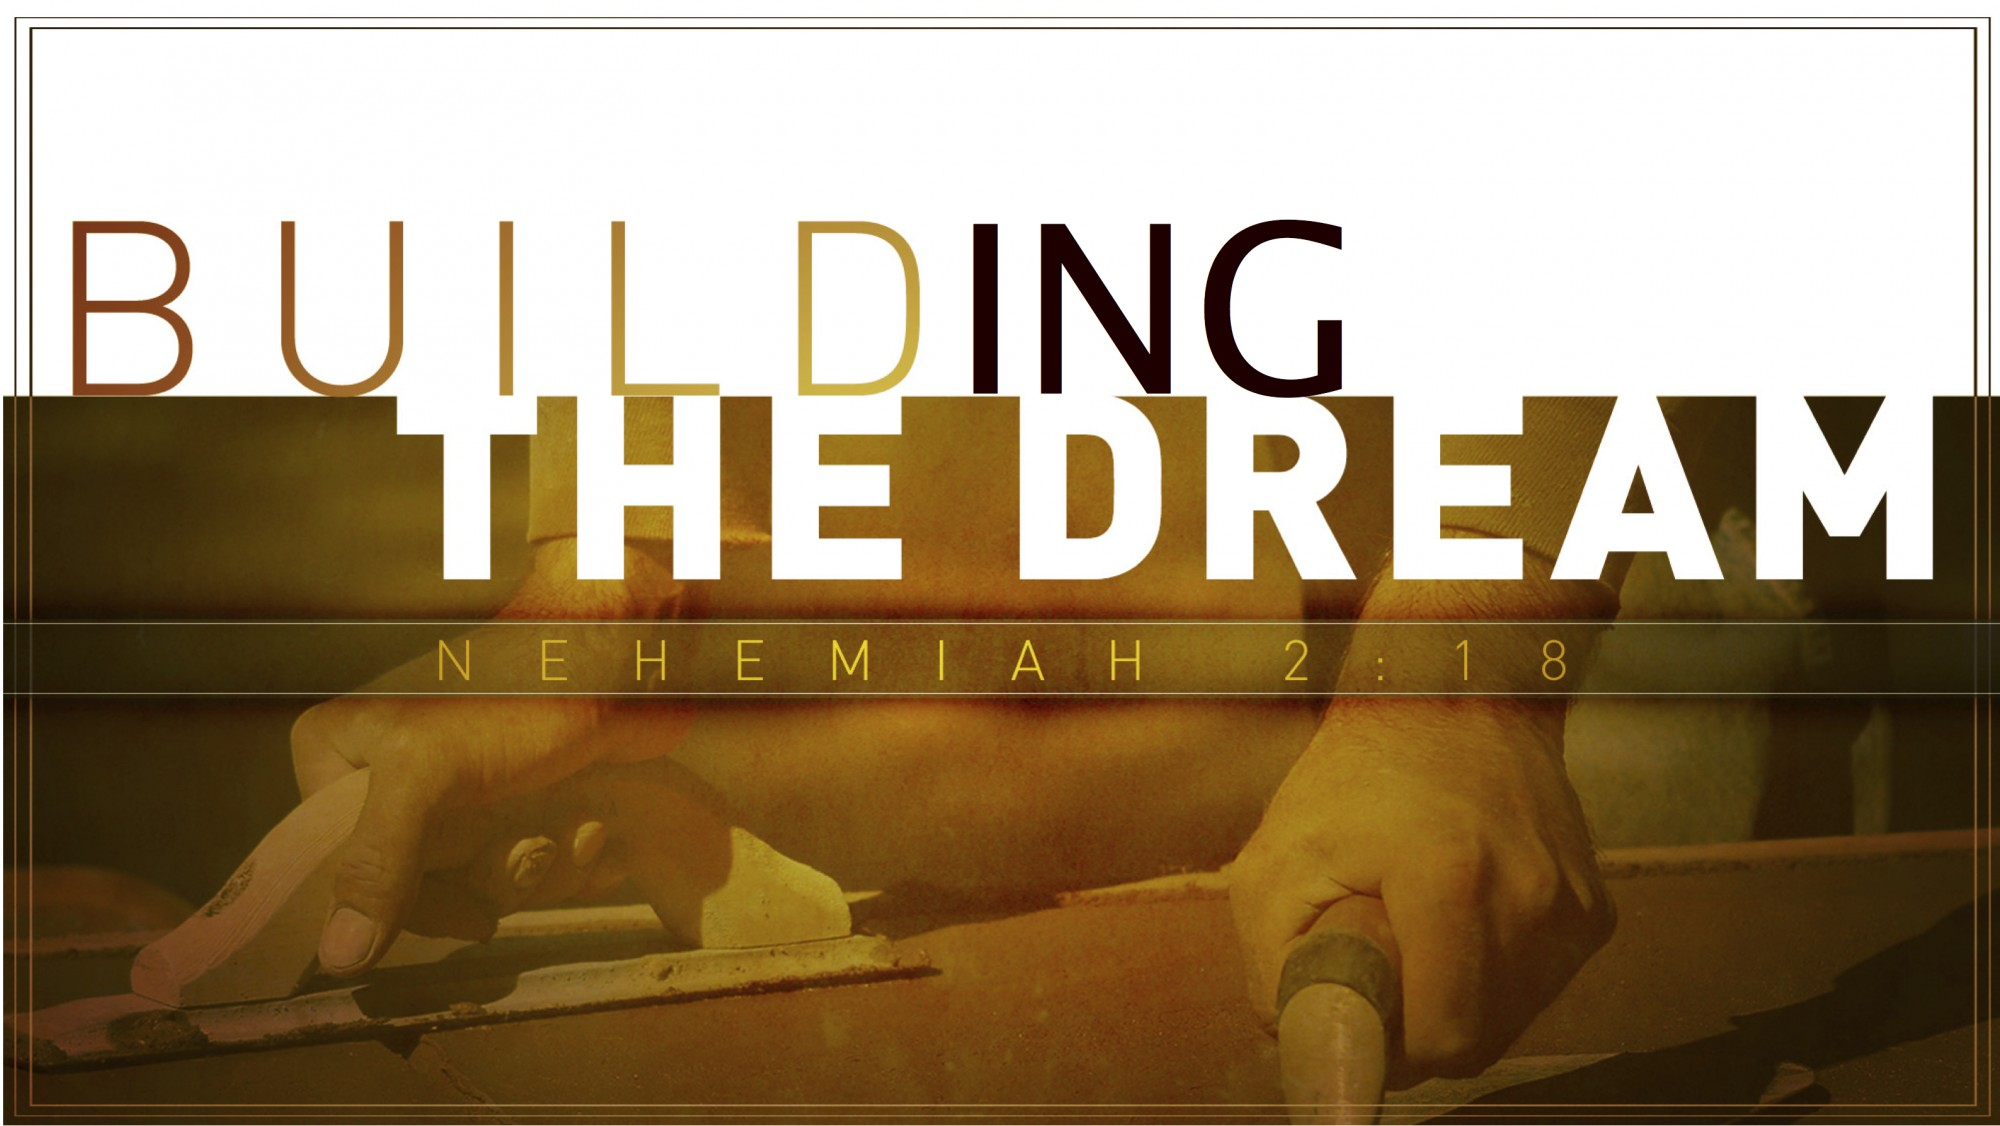 What does the building dream about